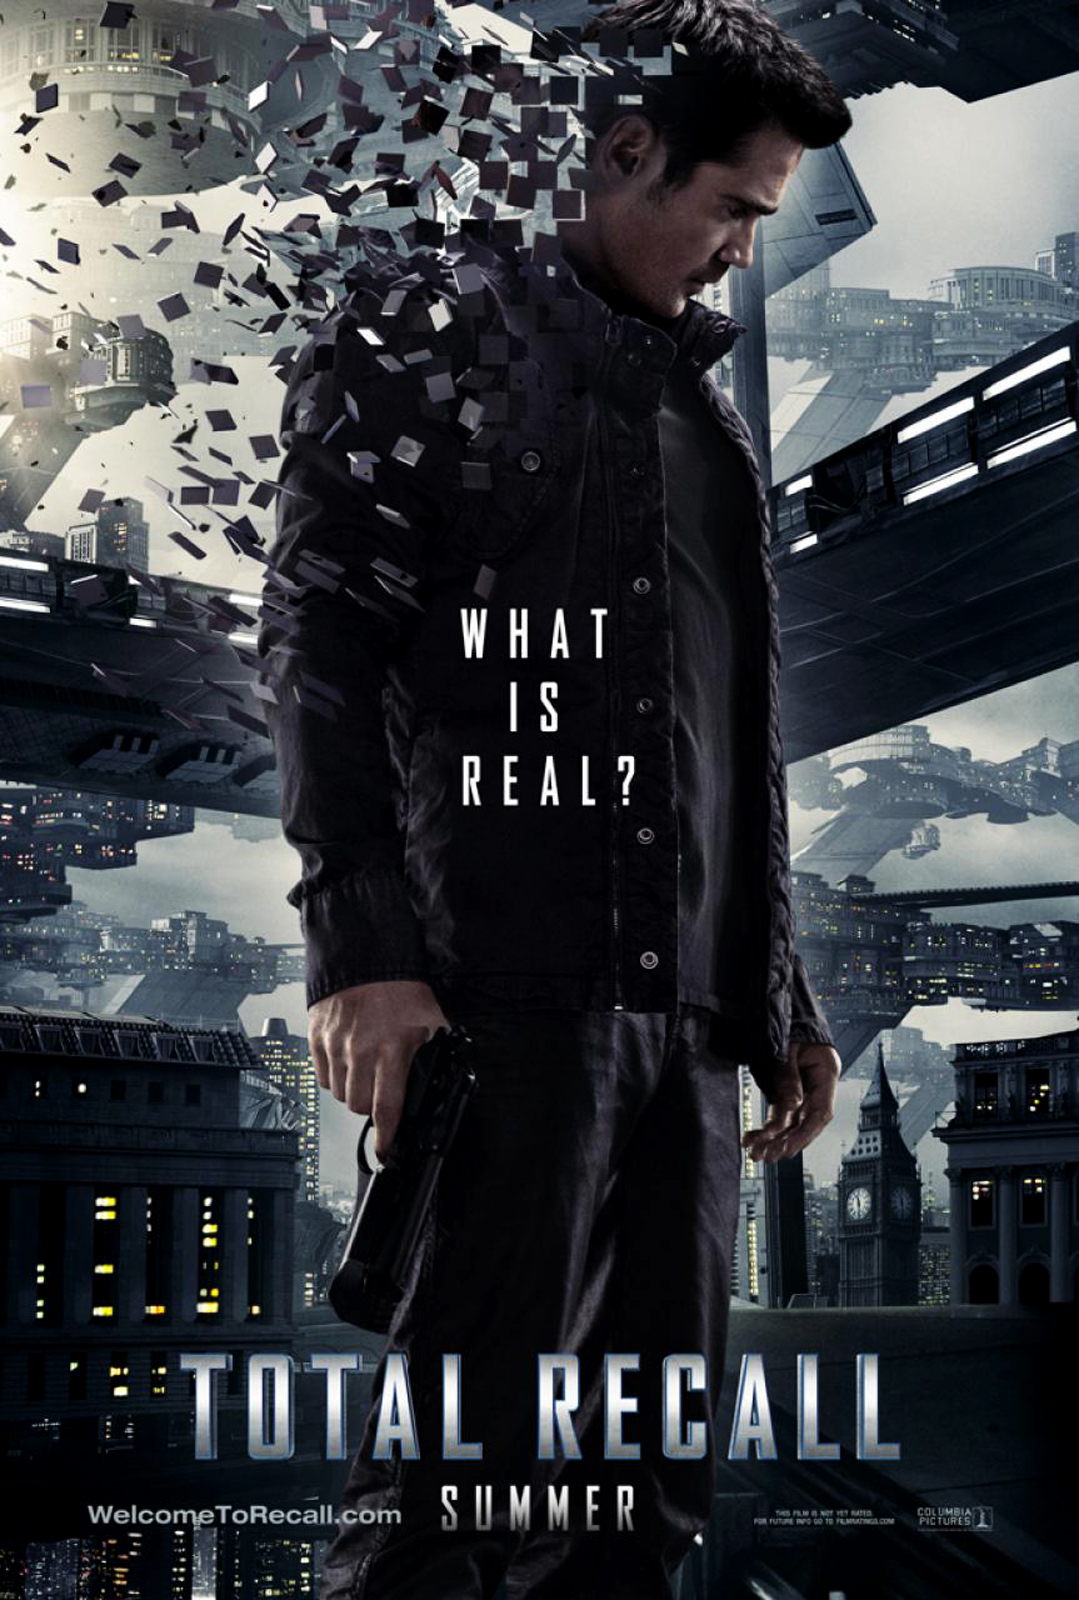 Total Recall 2012 Movie HD Wallpapers and Poster | Desktop ...